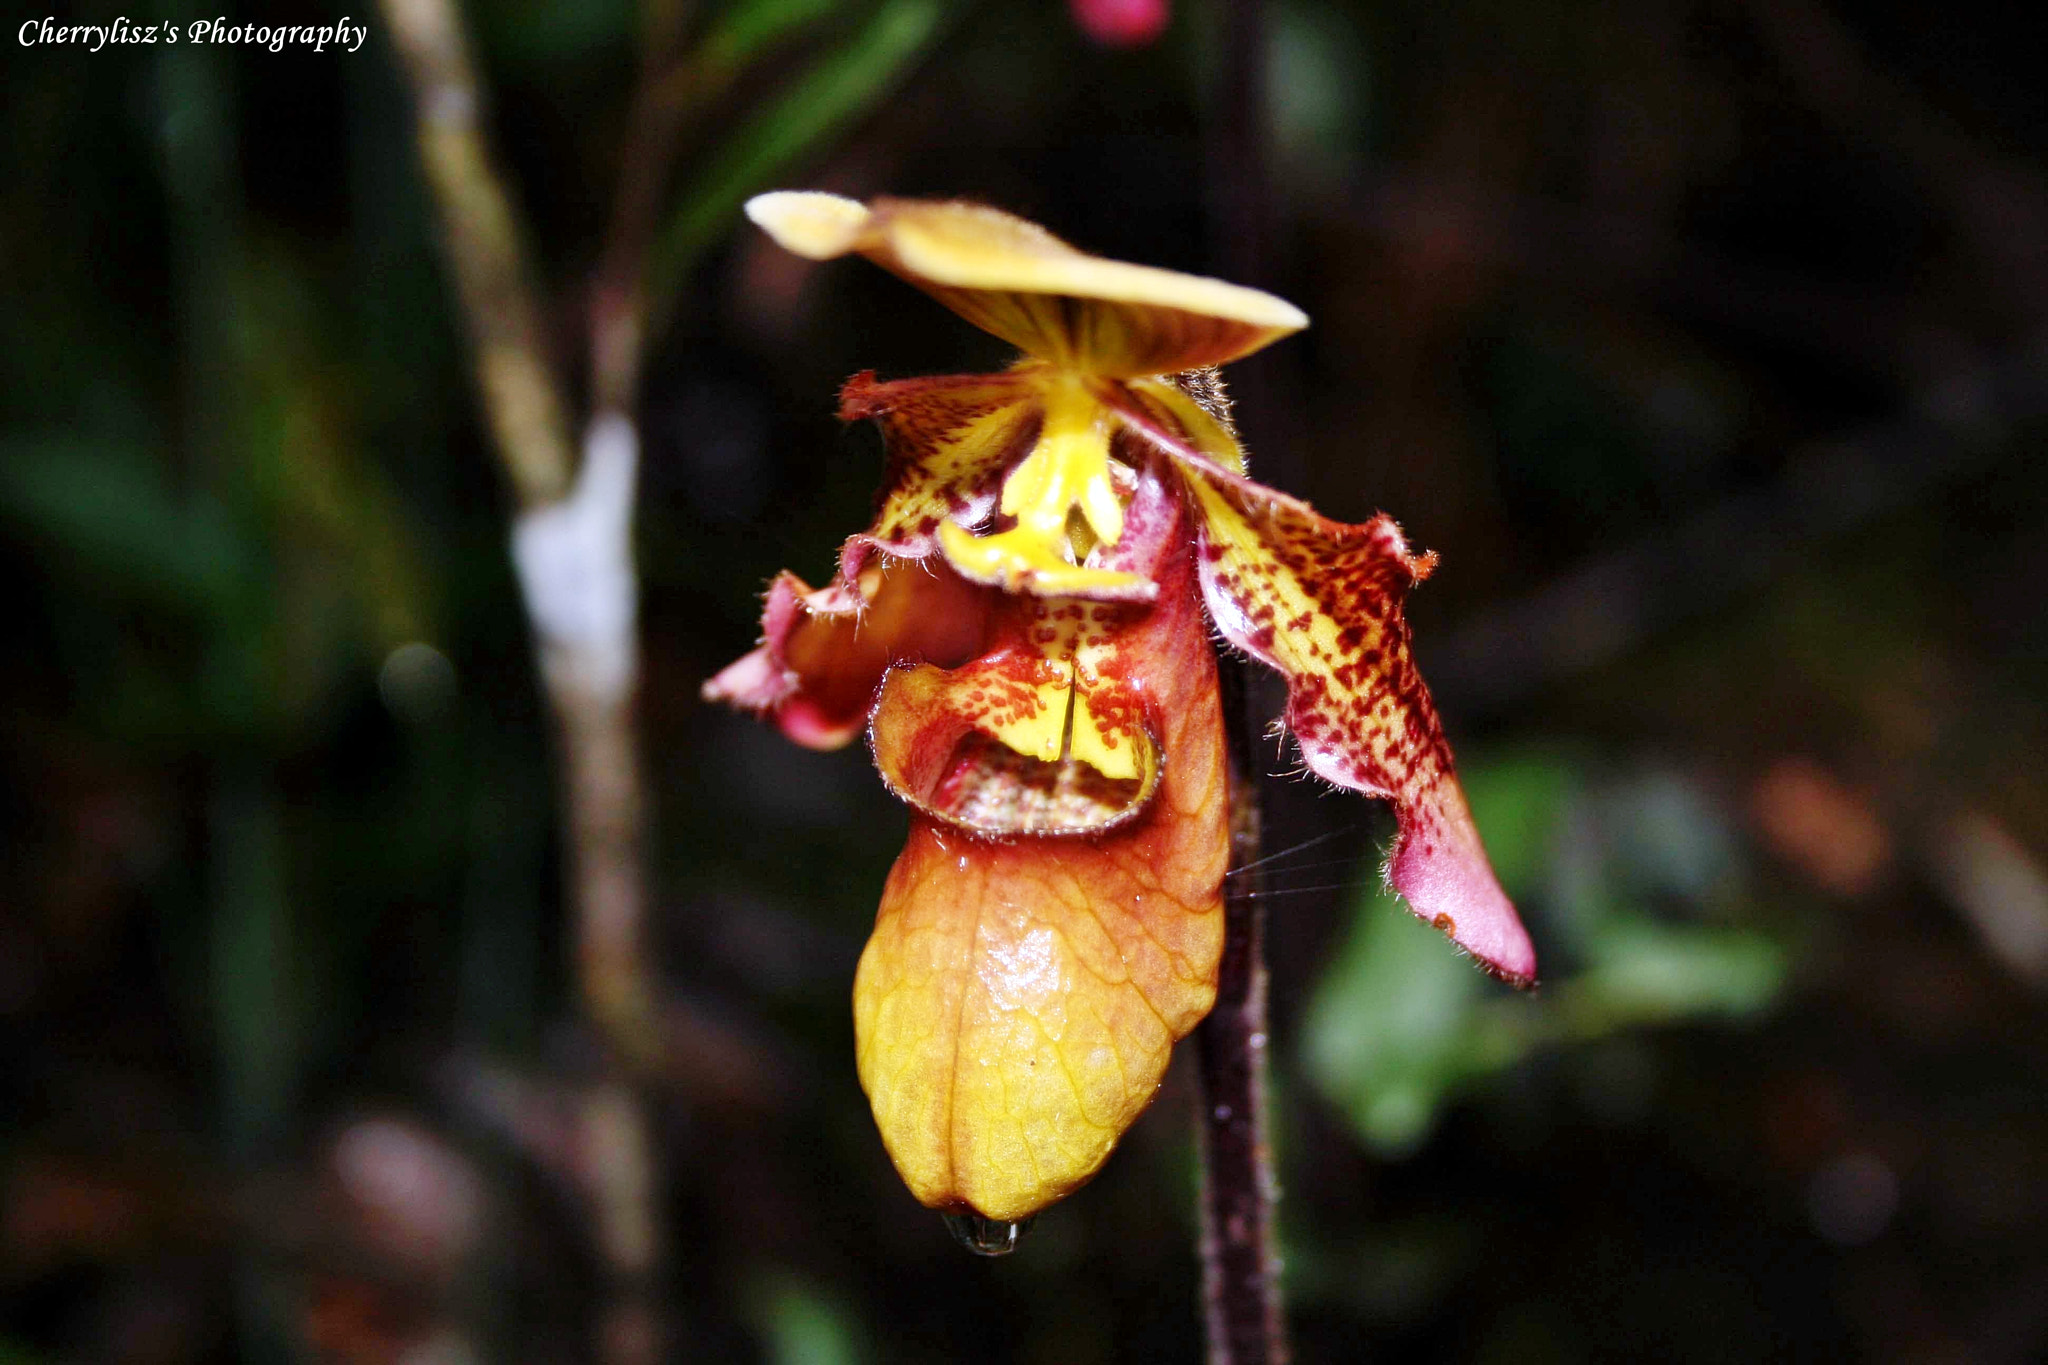 Photograph Kinabalu's Orchid by Cherry Murasaki on 500px